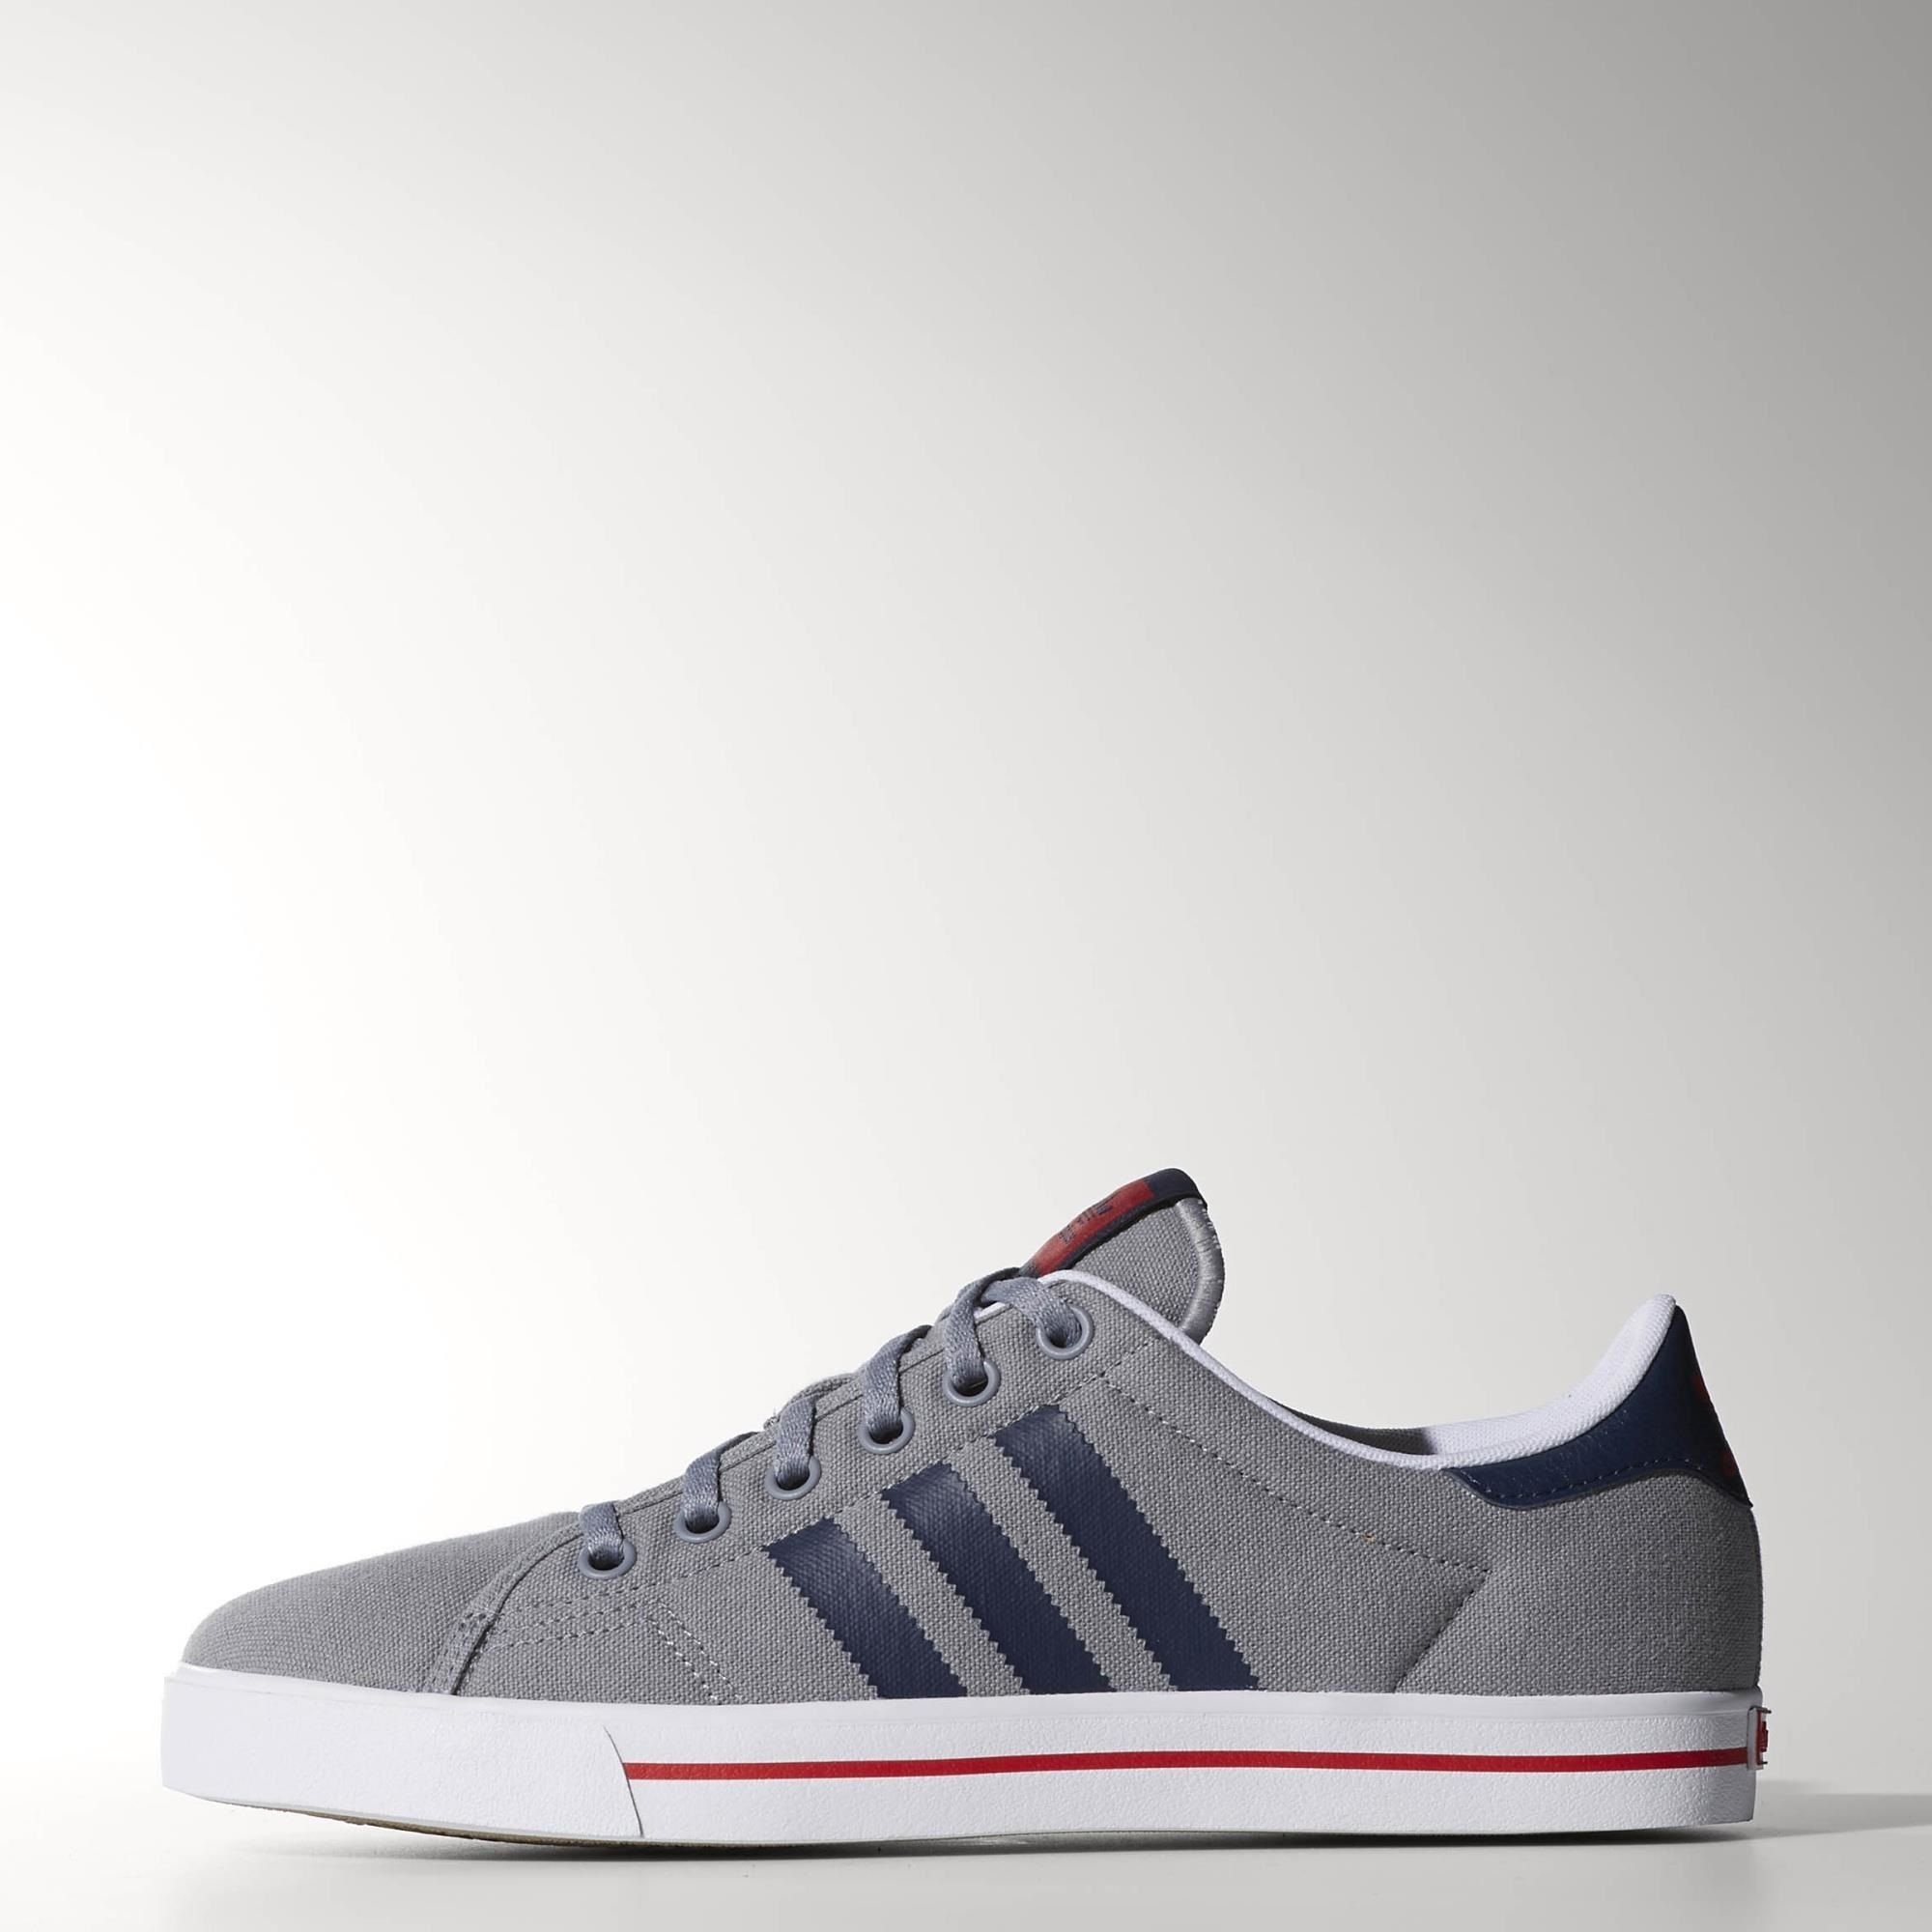 quality design be510 74c9e Discover your potential with adidas shoes for sports and lifestyle.